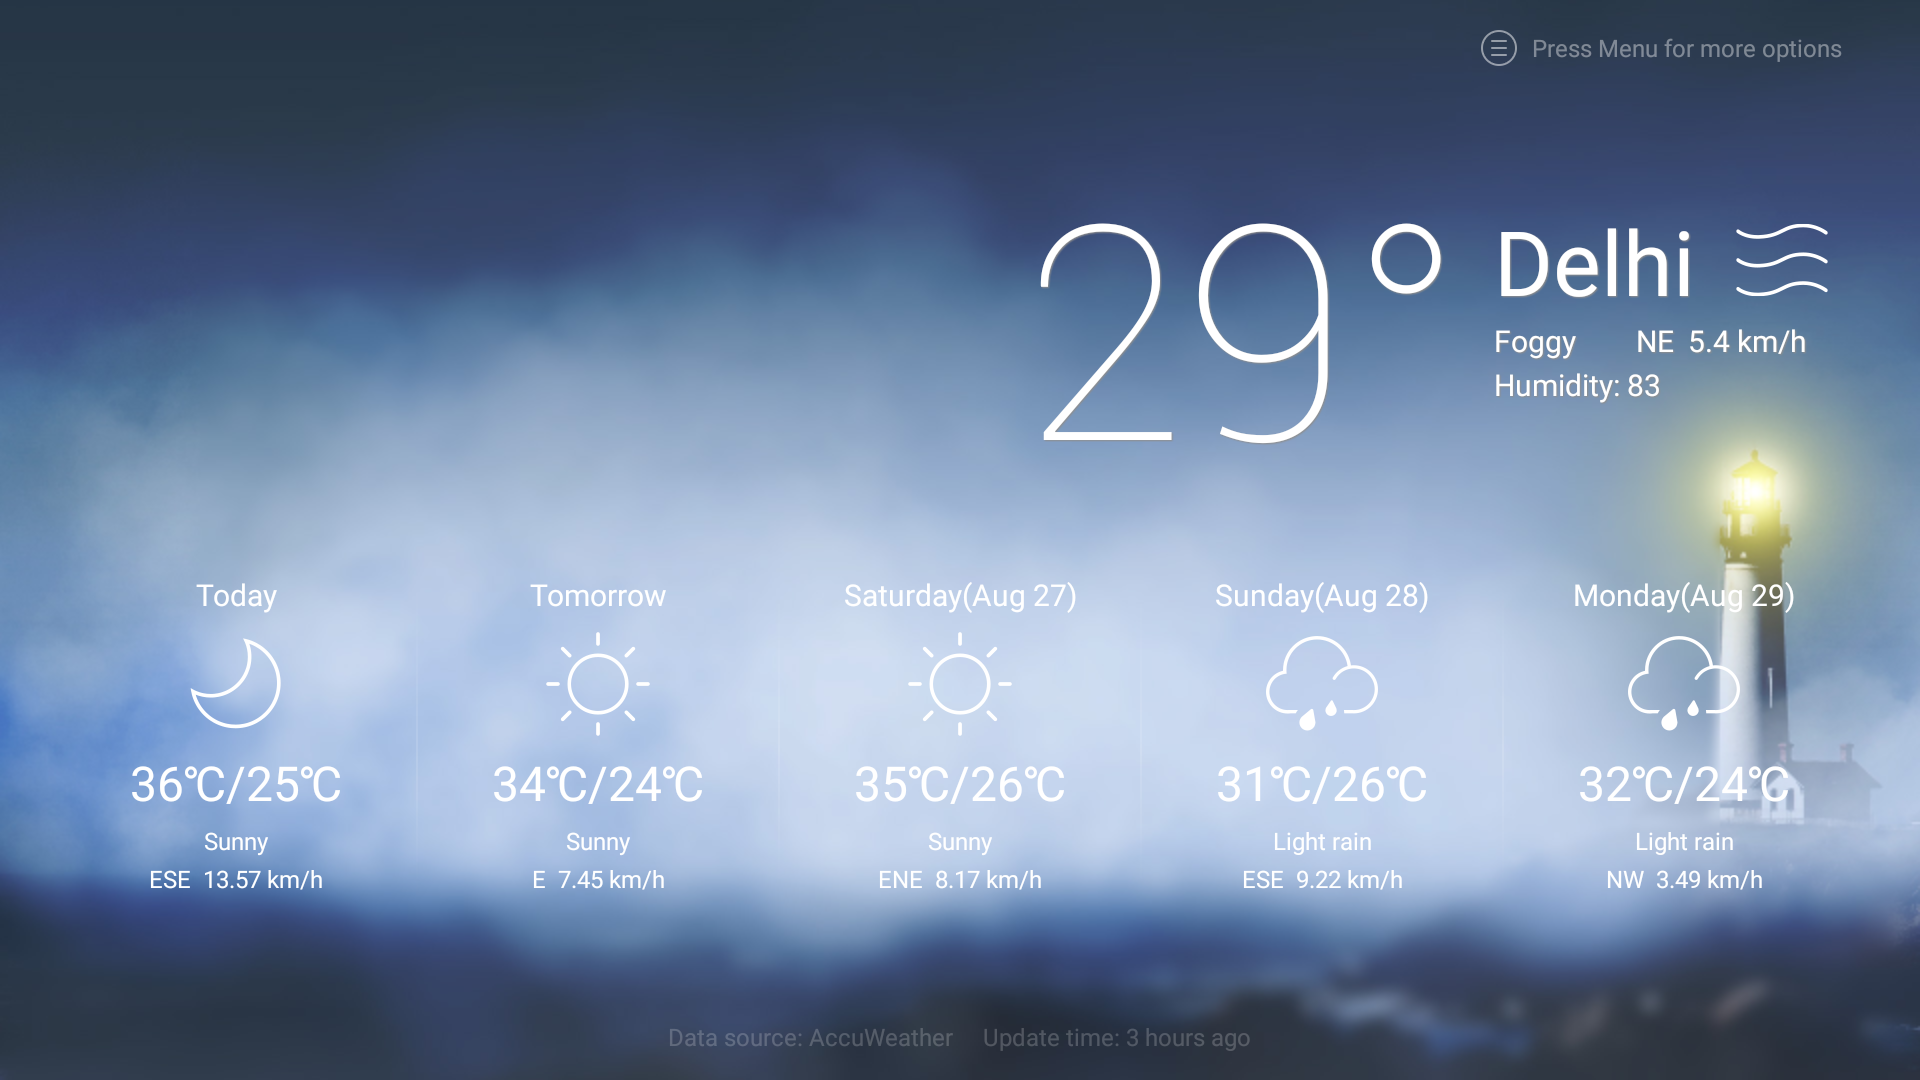 LeEco-TV-techniblogic-weather